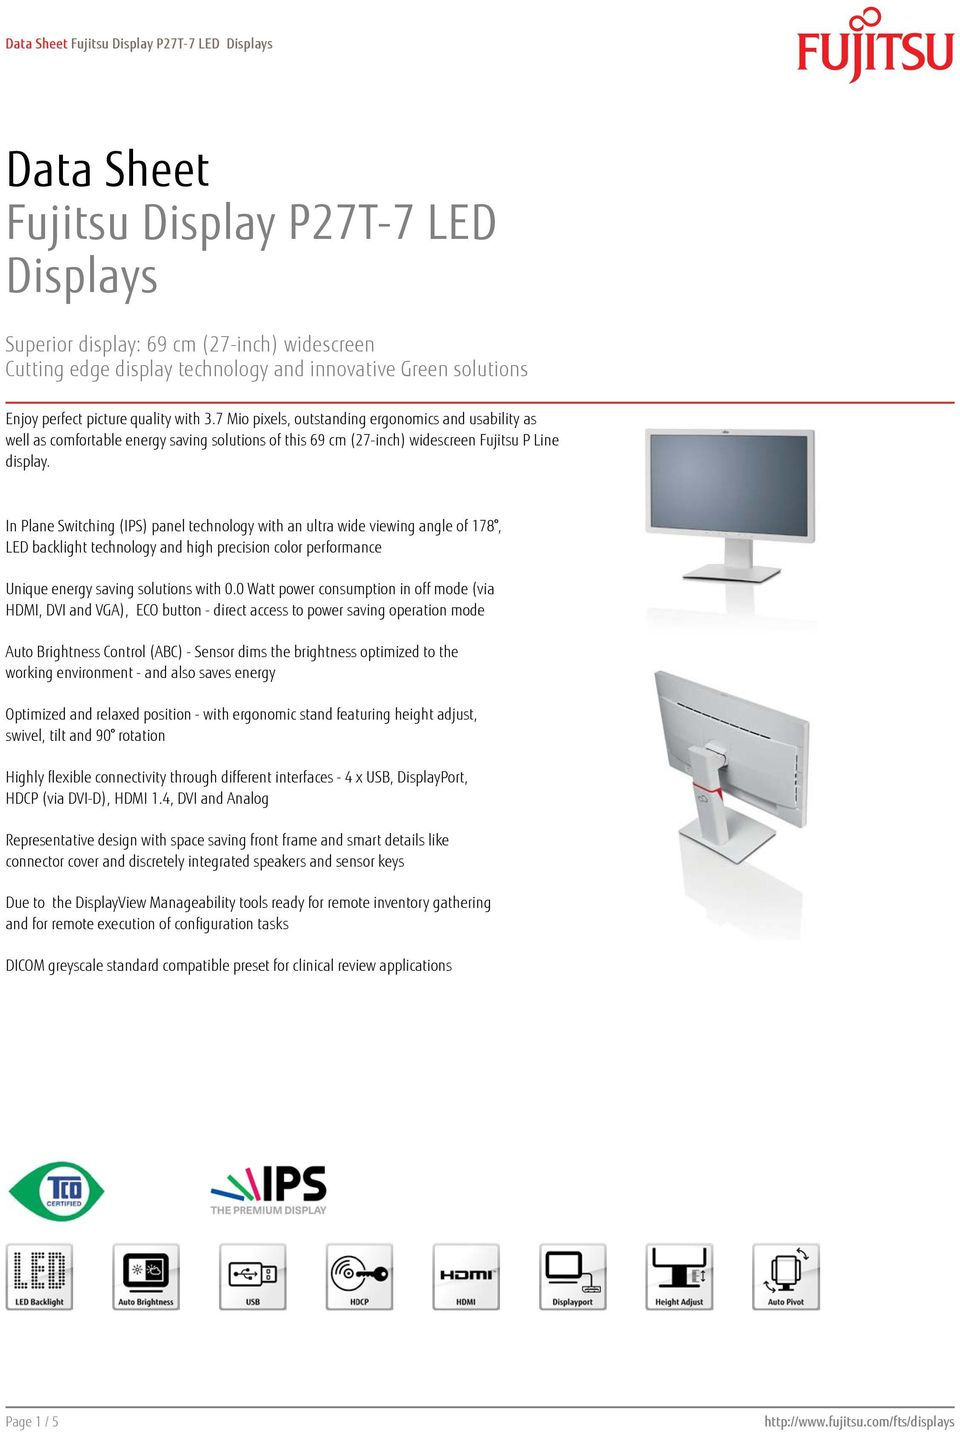 In Plane Switching (IPS) panel technology with an ultra wide viewing angle of 178, LED backlight technology and high precision color performance Unique energy saving solutions with 0.